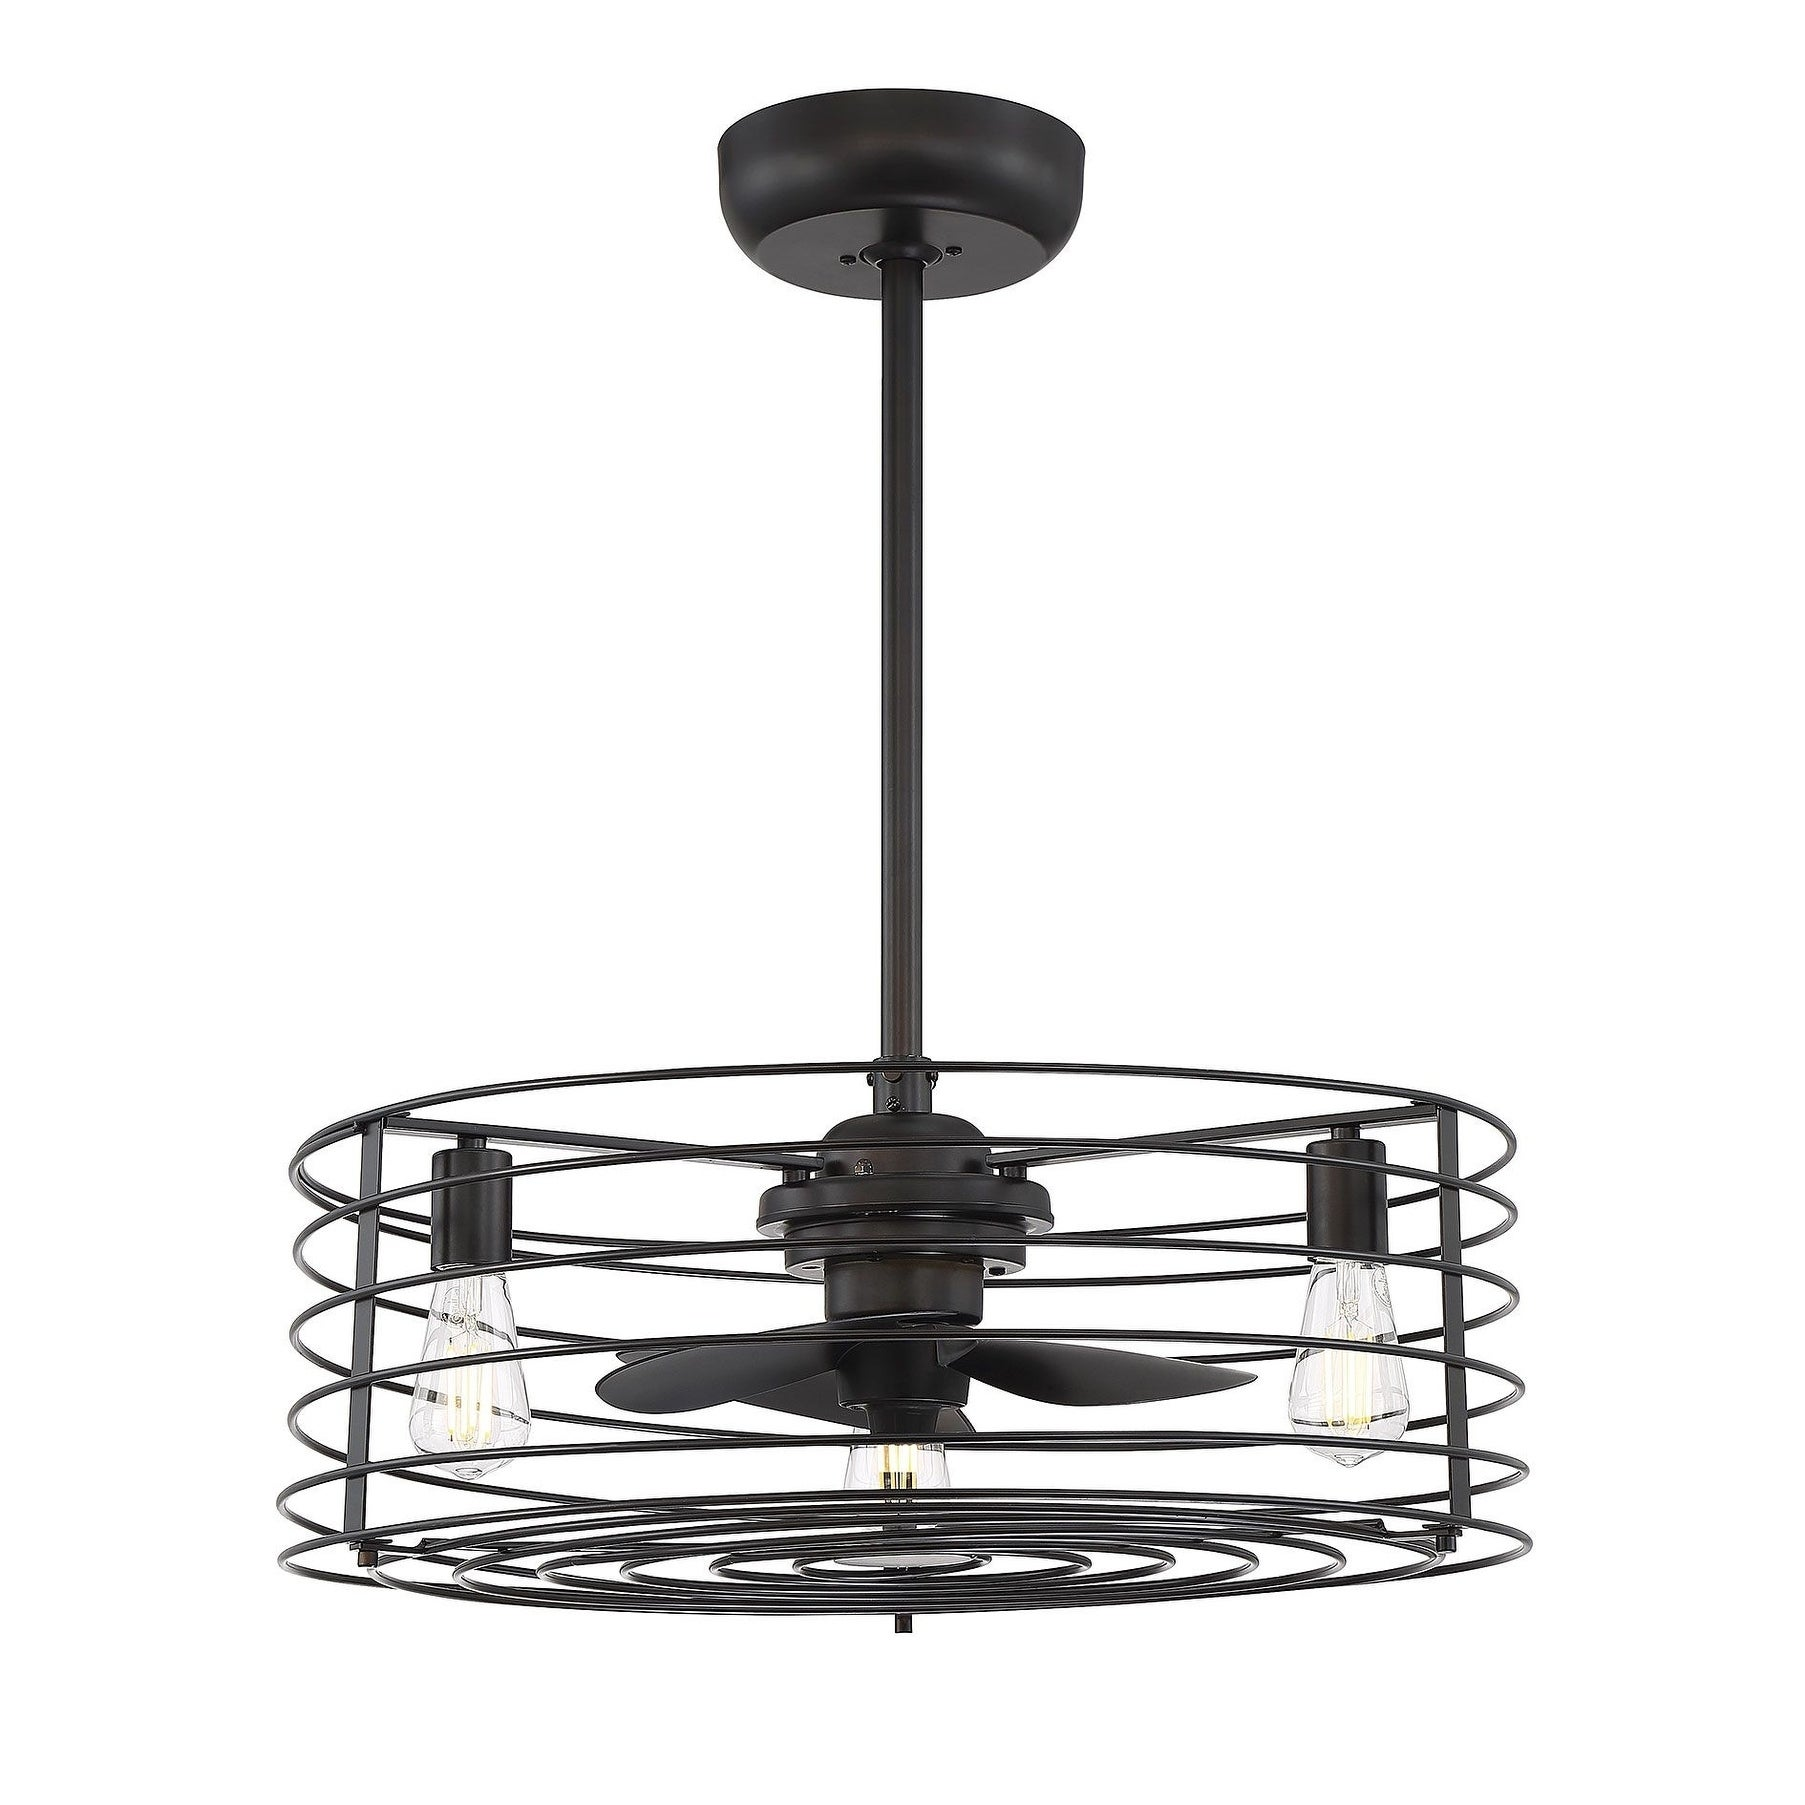 24 In Indoor Oil Rubbed Bronze Ceiling Fan With Light Overstock 27298798